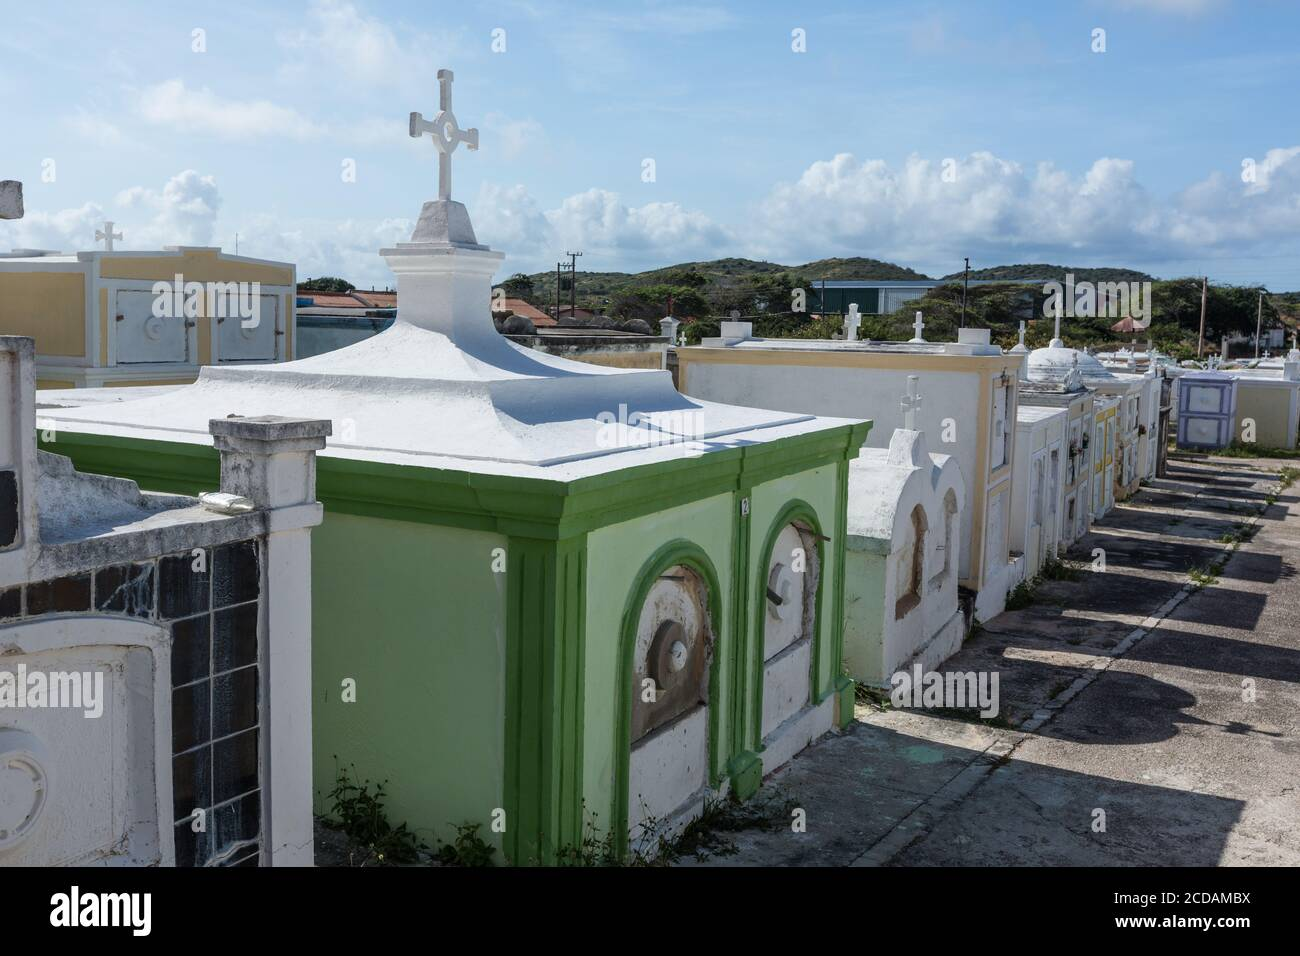 The cemetery of Saint Joseph's Catholic Church, a parish church in the town of Barber on the Caribbean island of Curacao in the Netherlands Antilles. Stock Photo